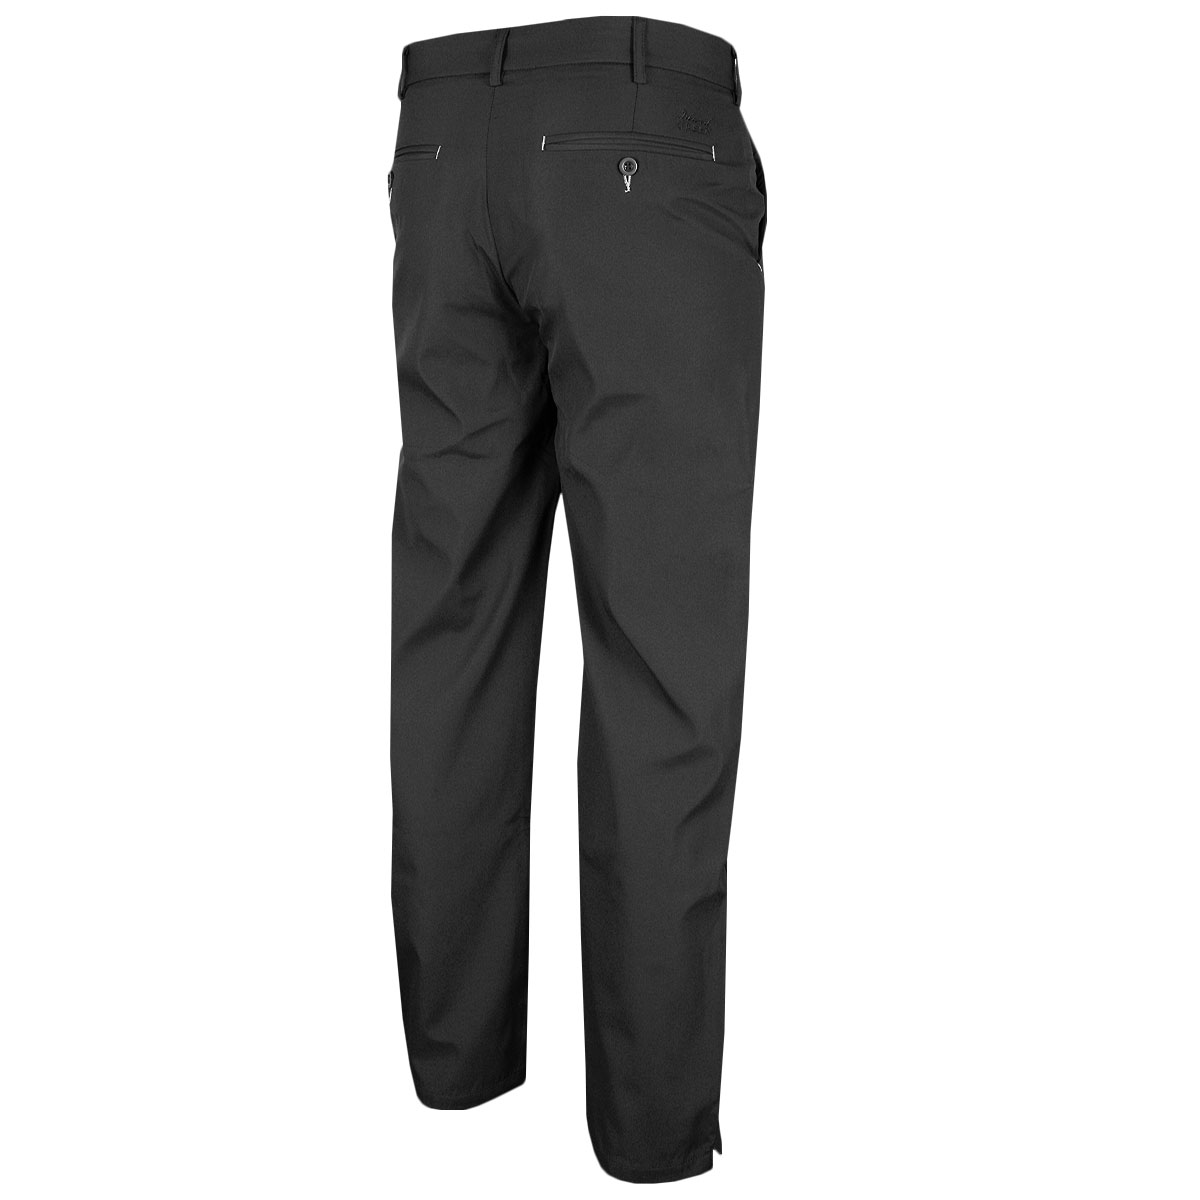 Island-Green-Mens-2019-Golf-All-Weather-Water-Resistant-Golf-Trouser-33-OFF-RRP thumbnail 3